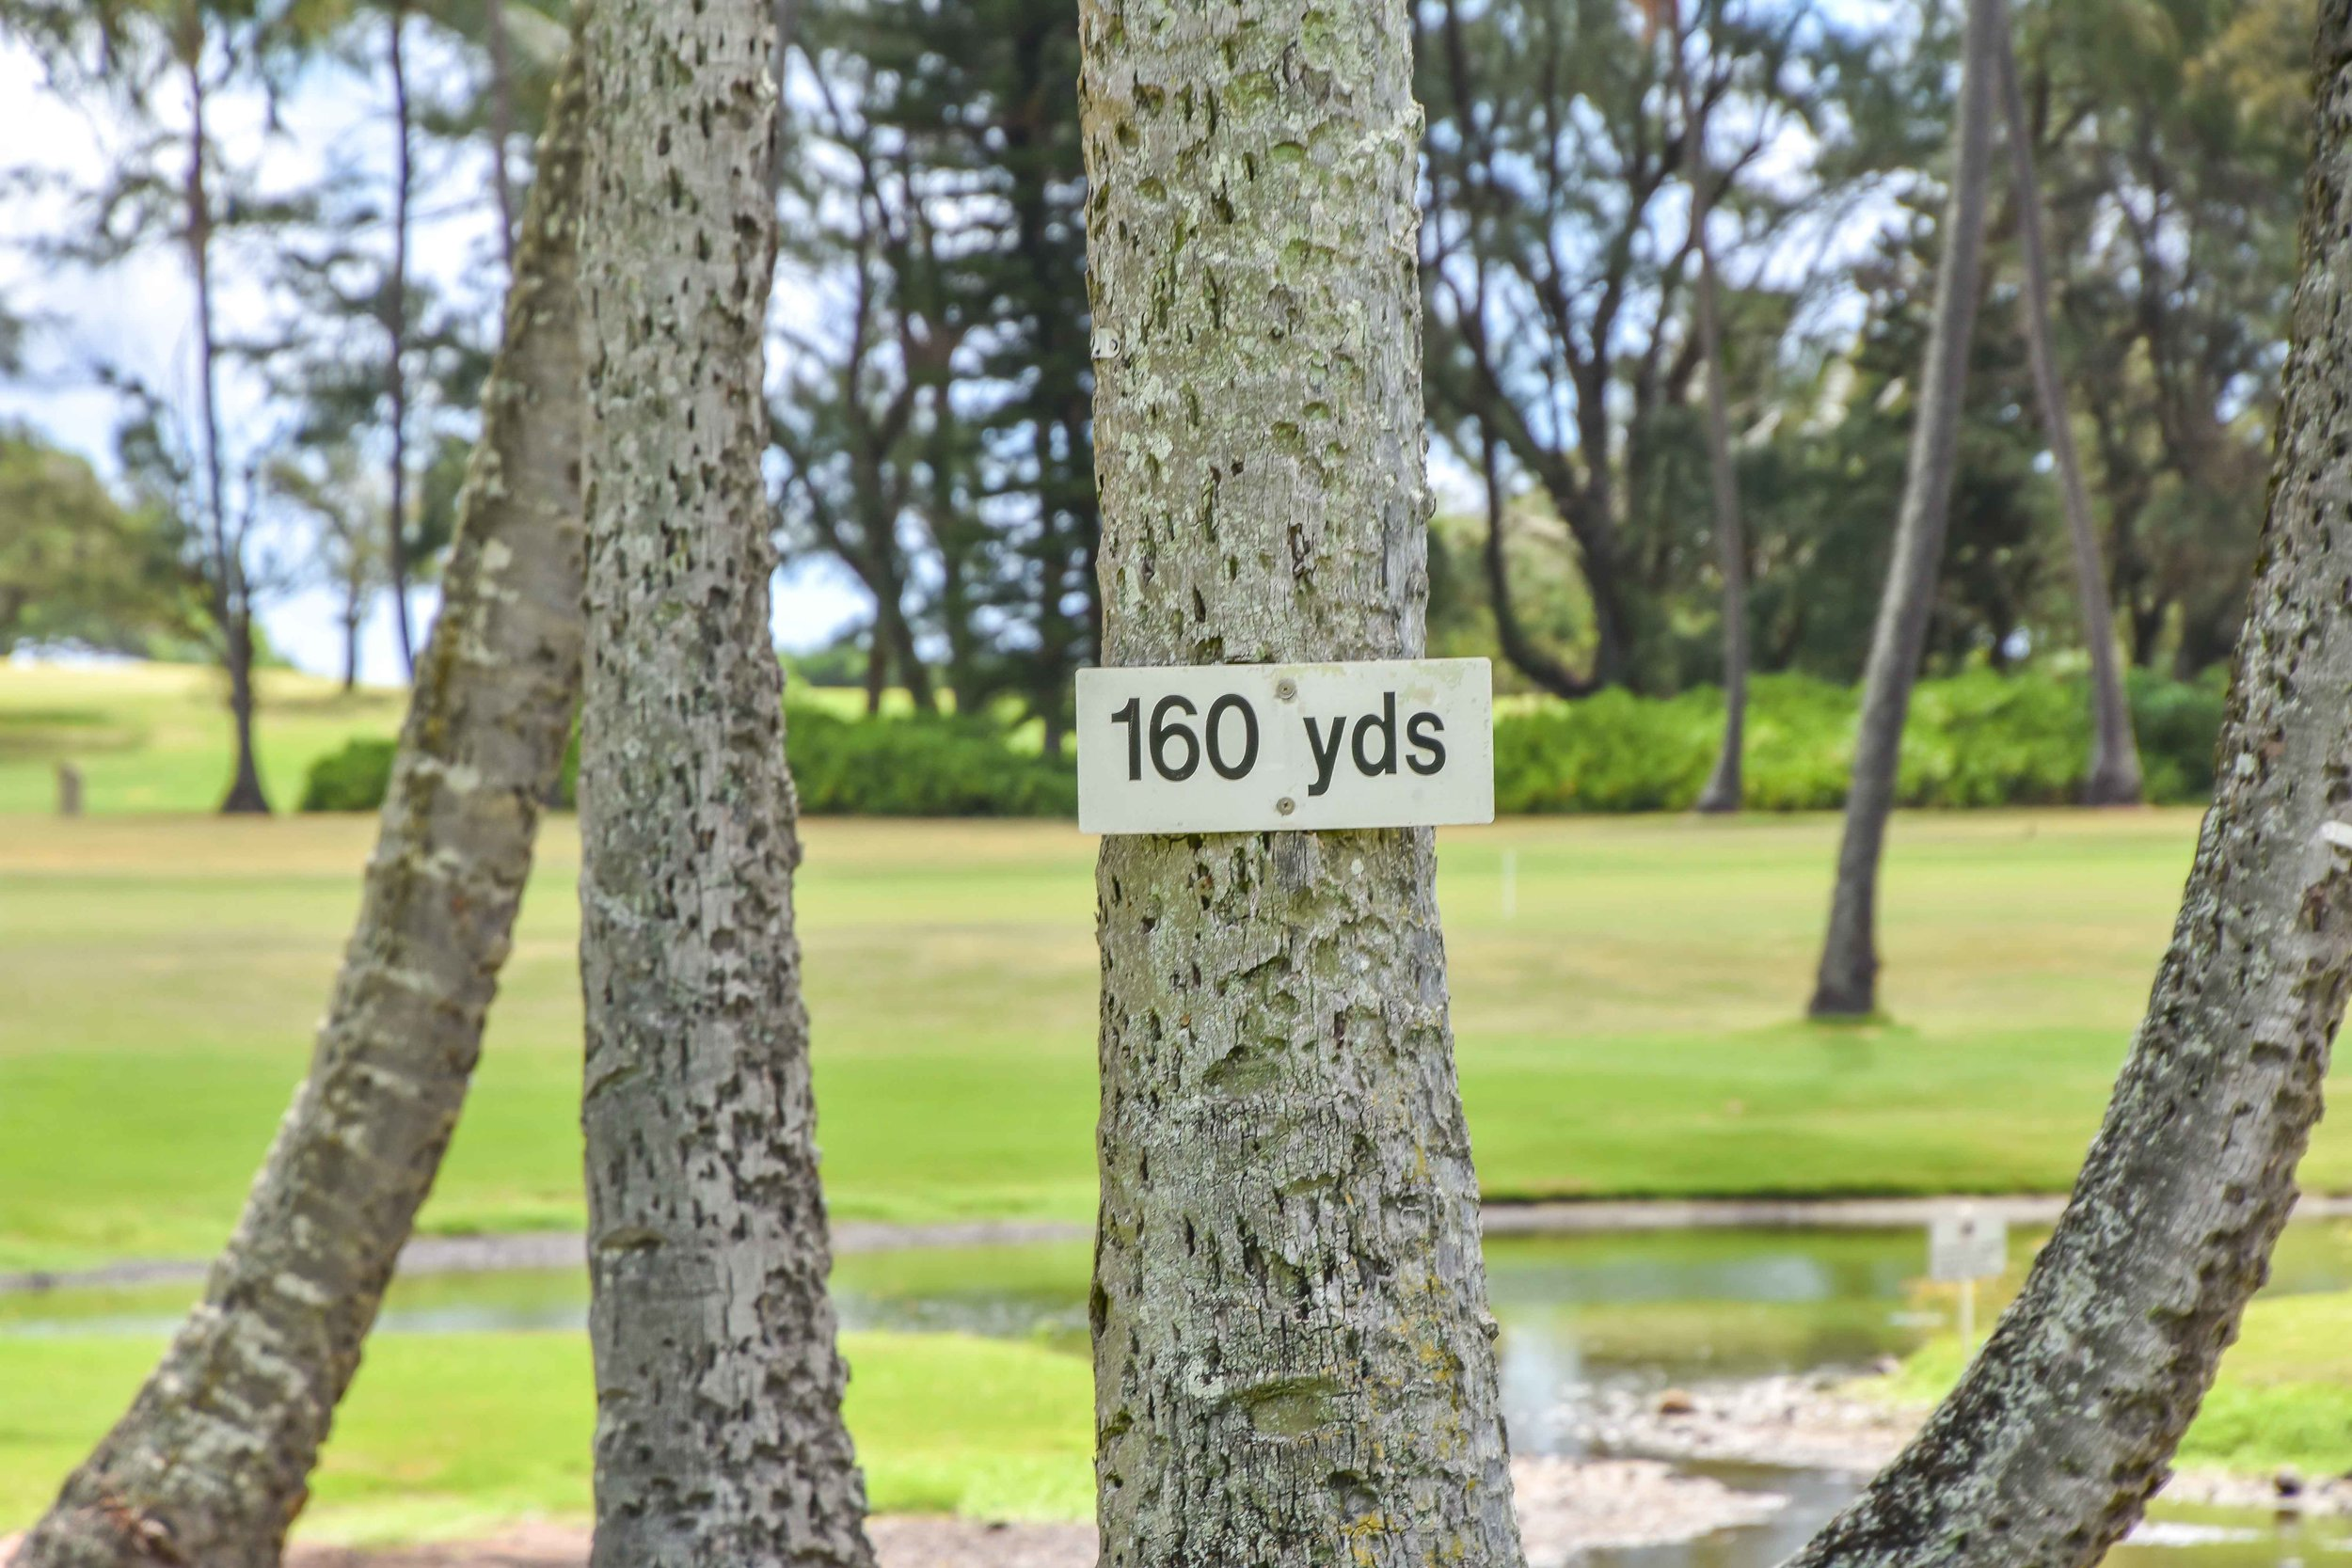 Ah yes, the 160 yard tree.